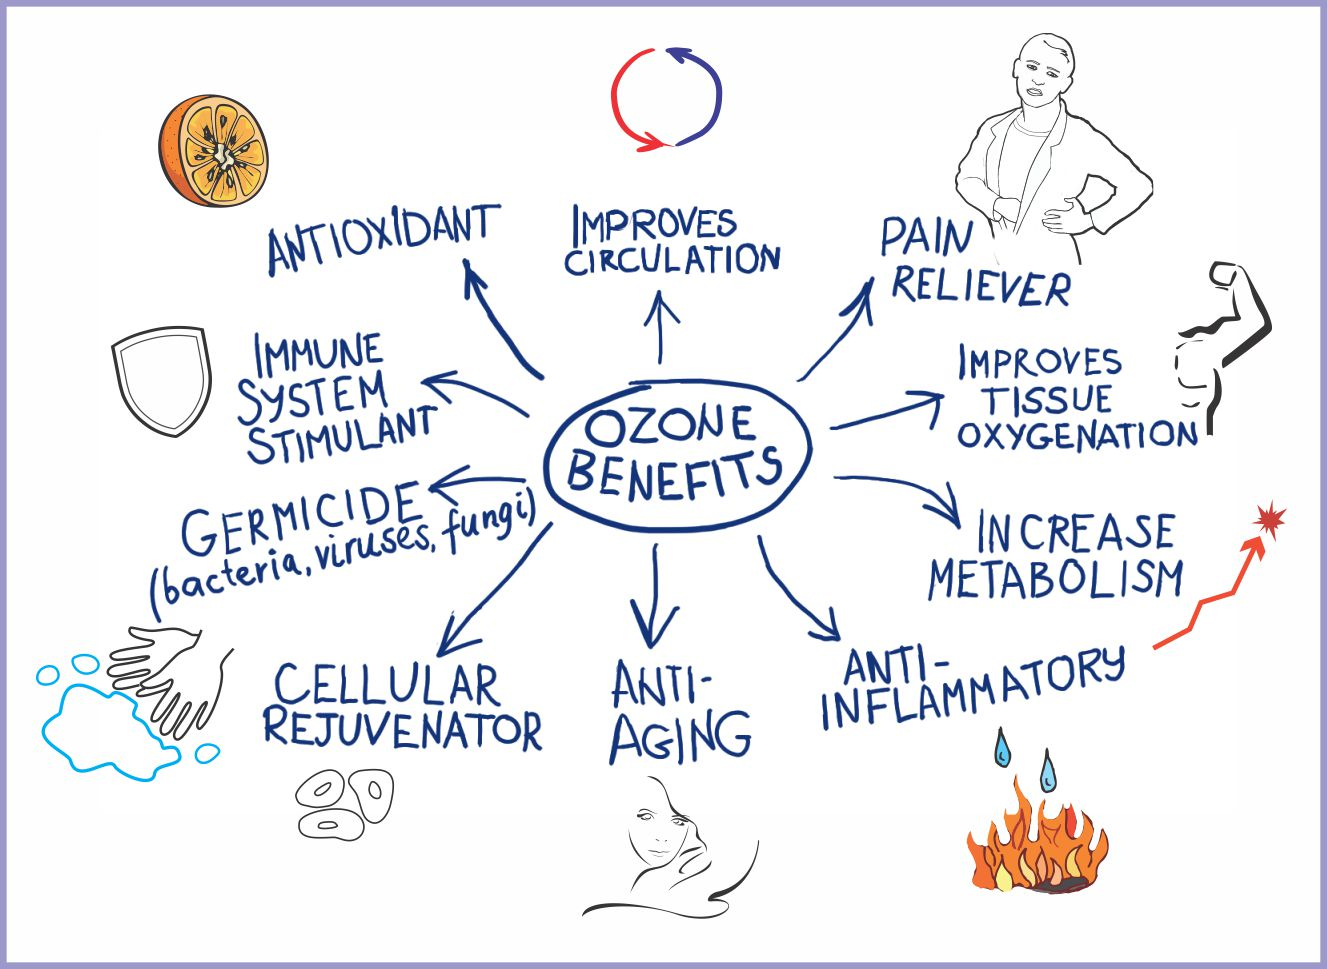 Ozone benefits picture for email